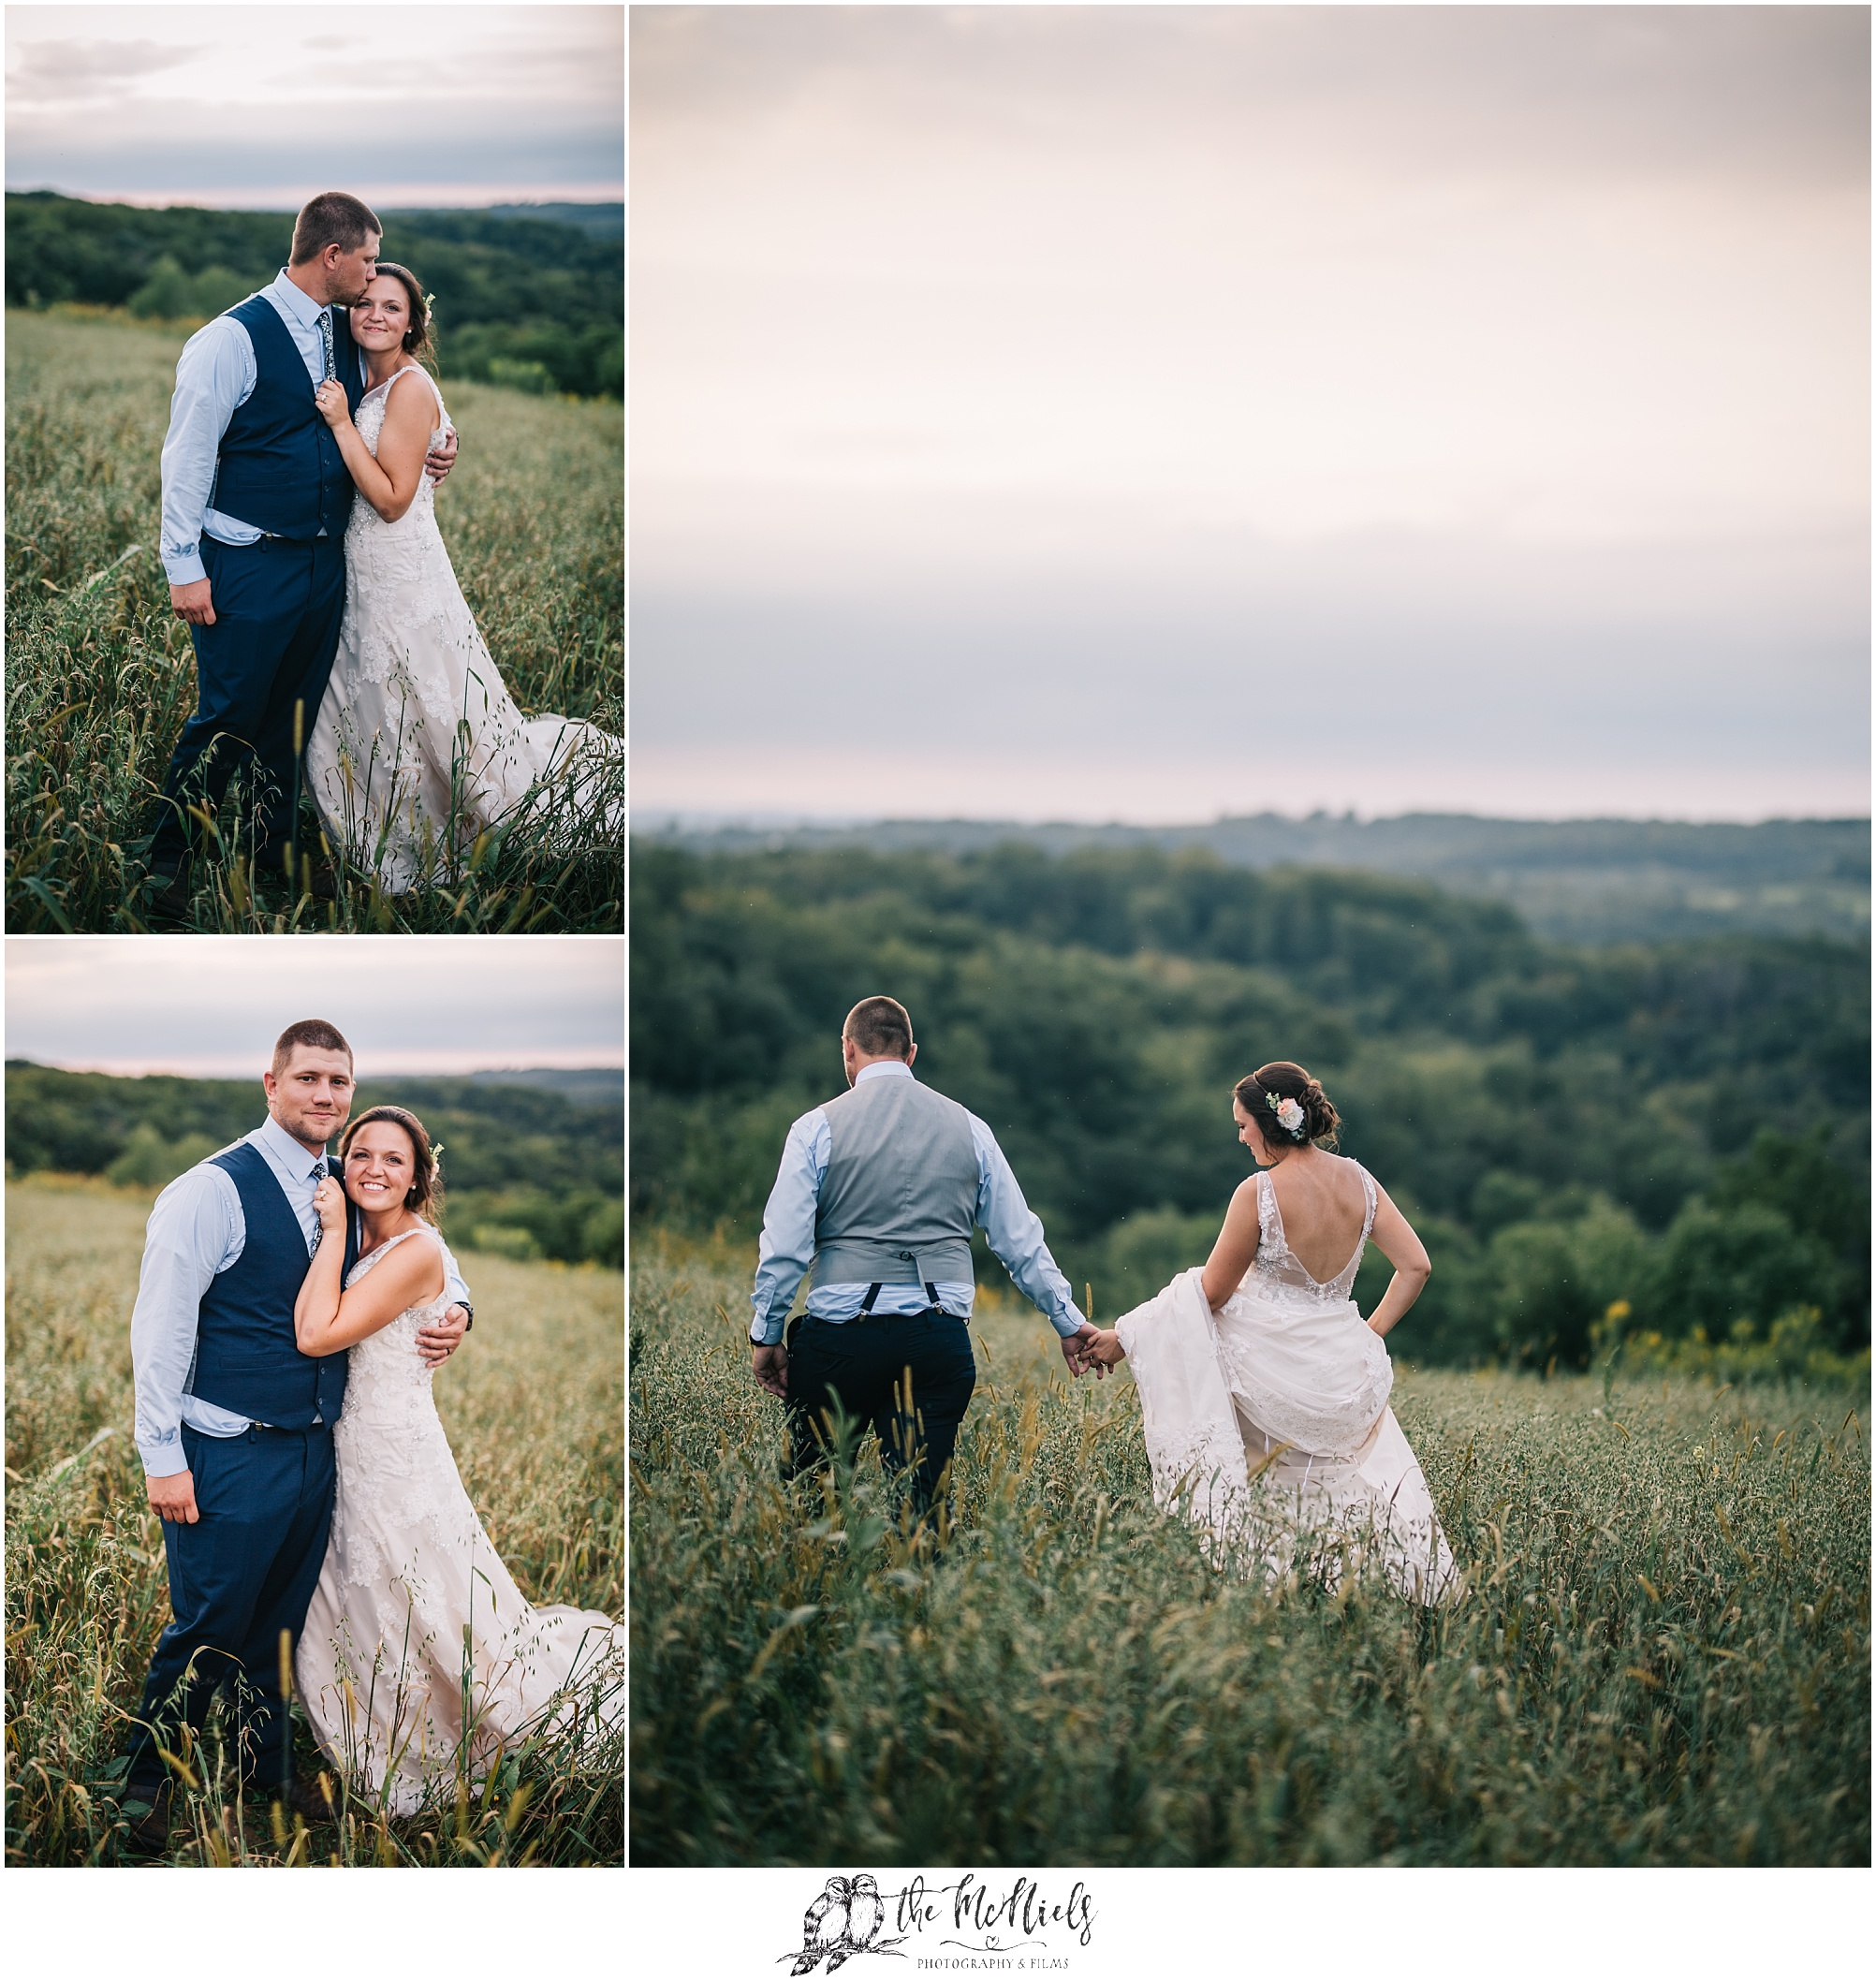 Vrbo Wisconsin Wedding / Get inspired with our beautiful wedding stories or search for florists, venues, photographers, and other wedding.